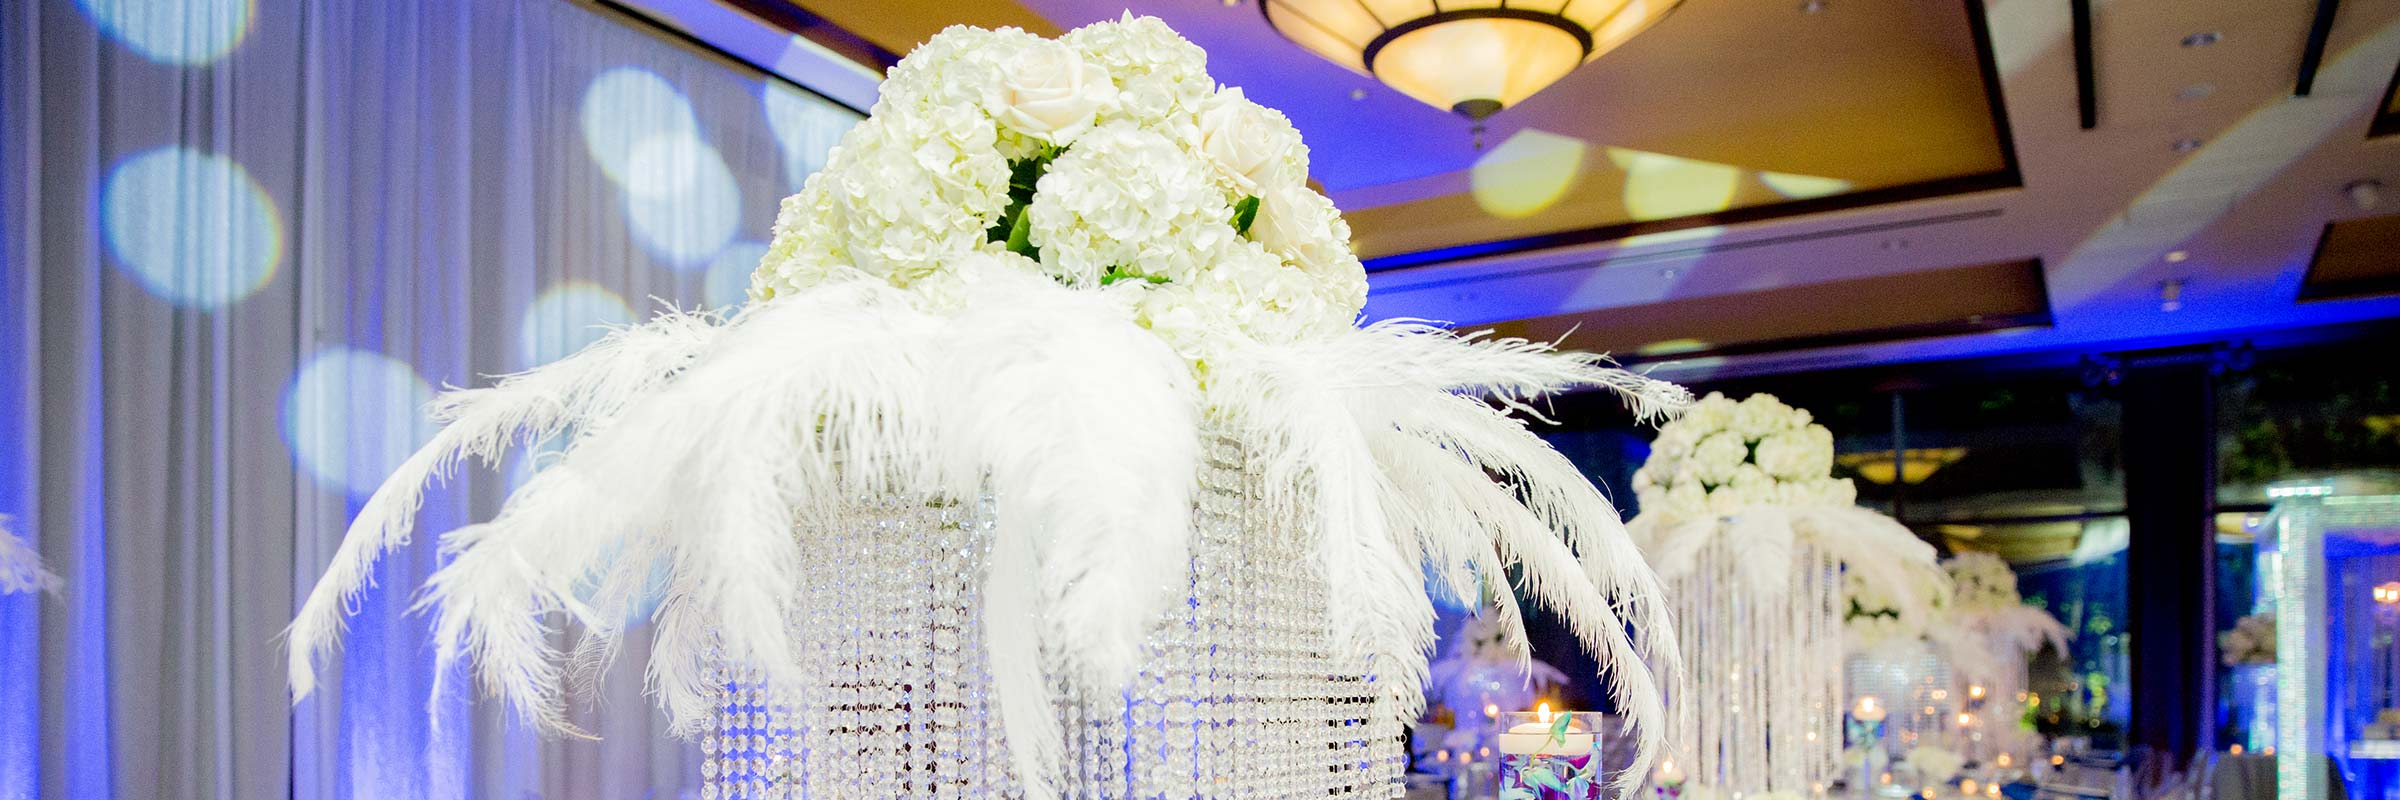 White Floral Arriangement Centerpiece Feathers Crystals